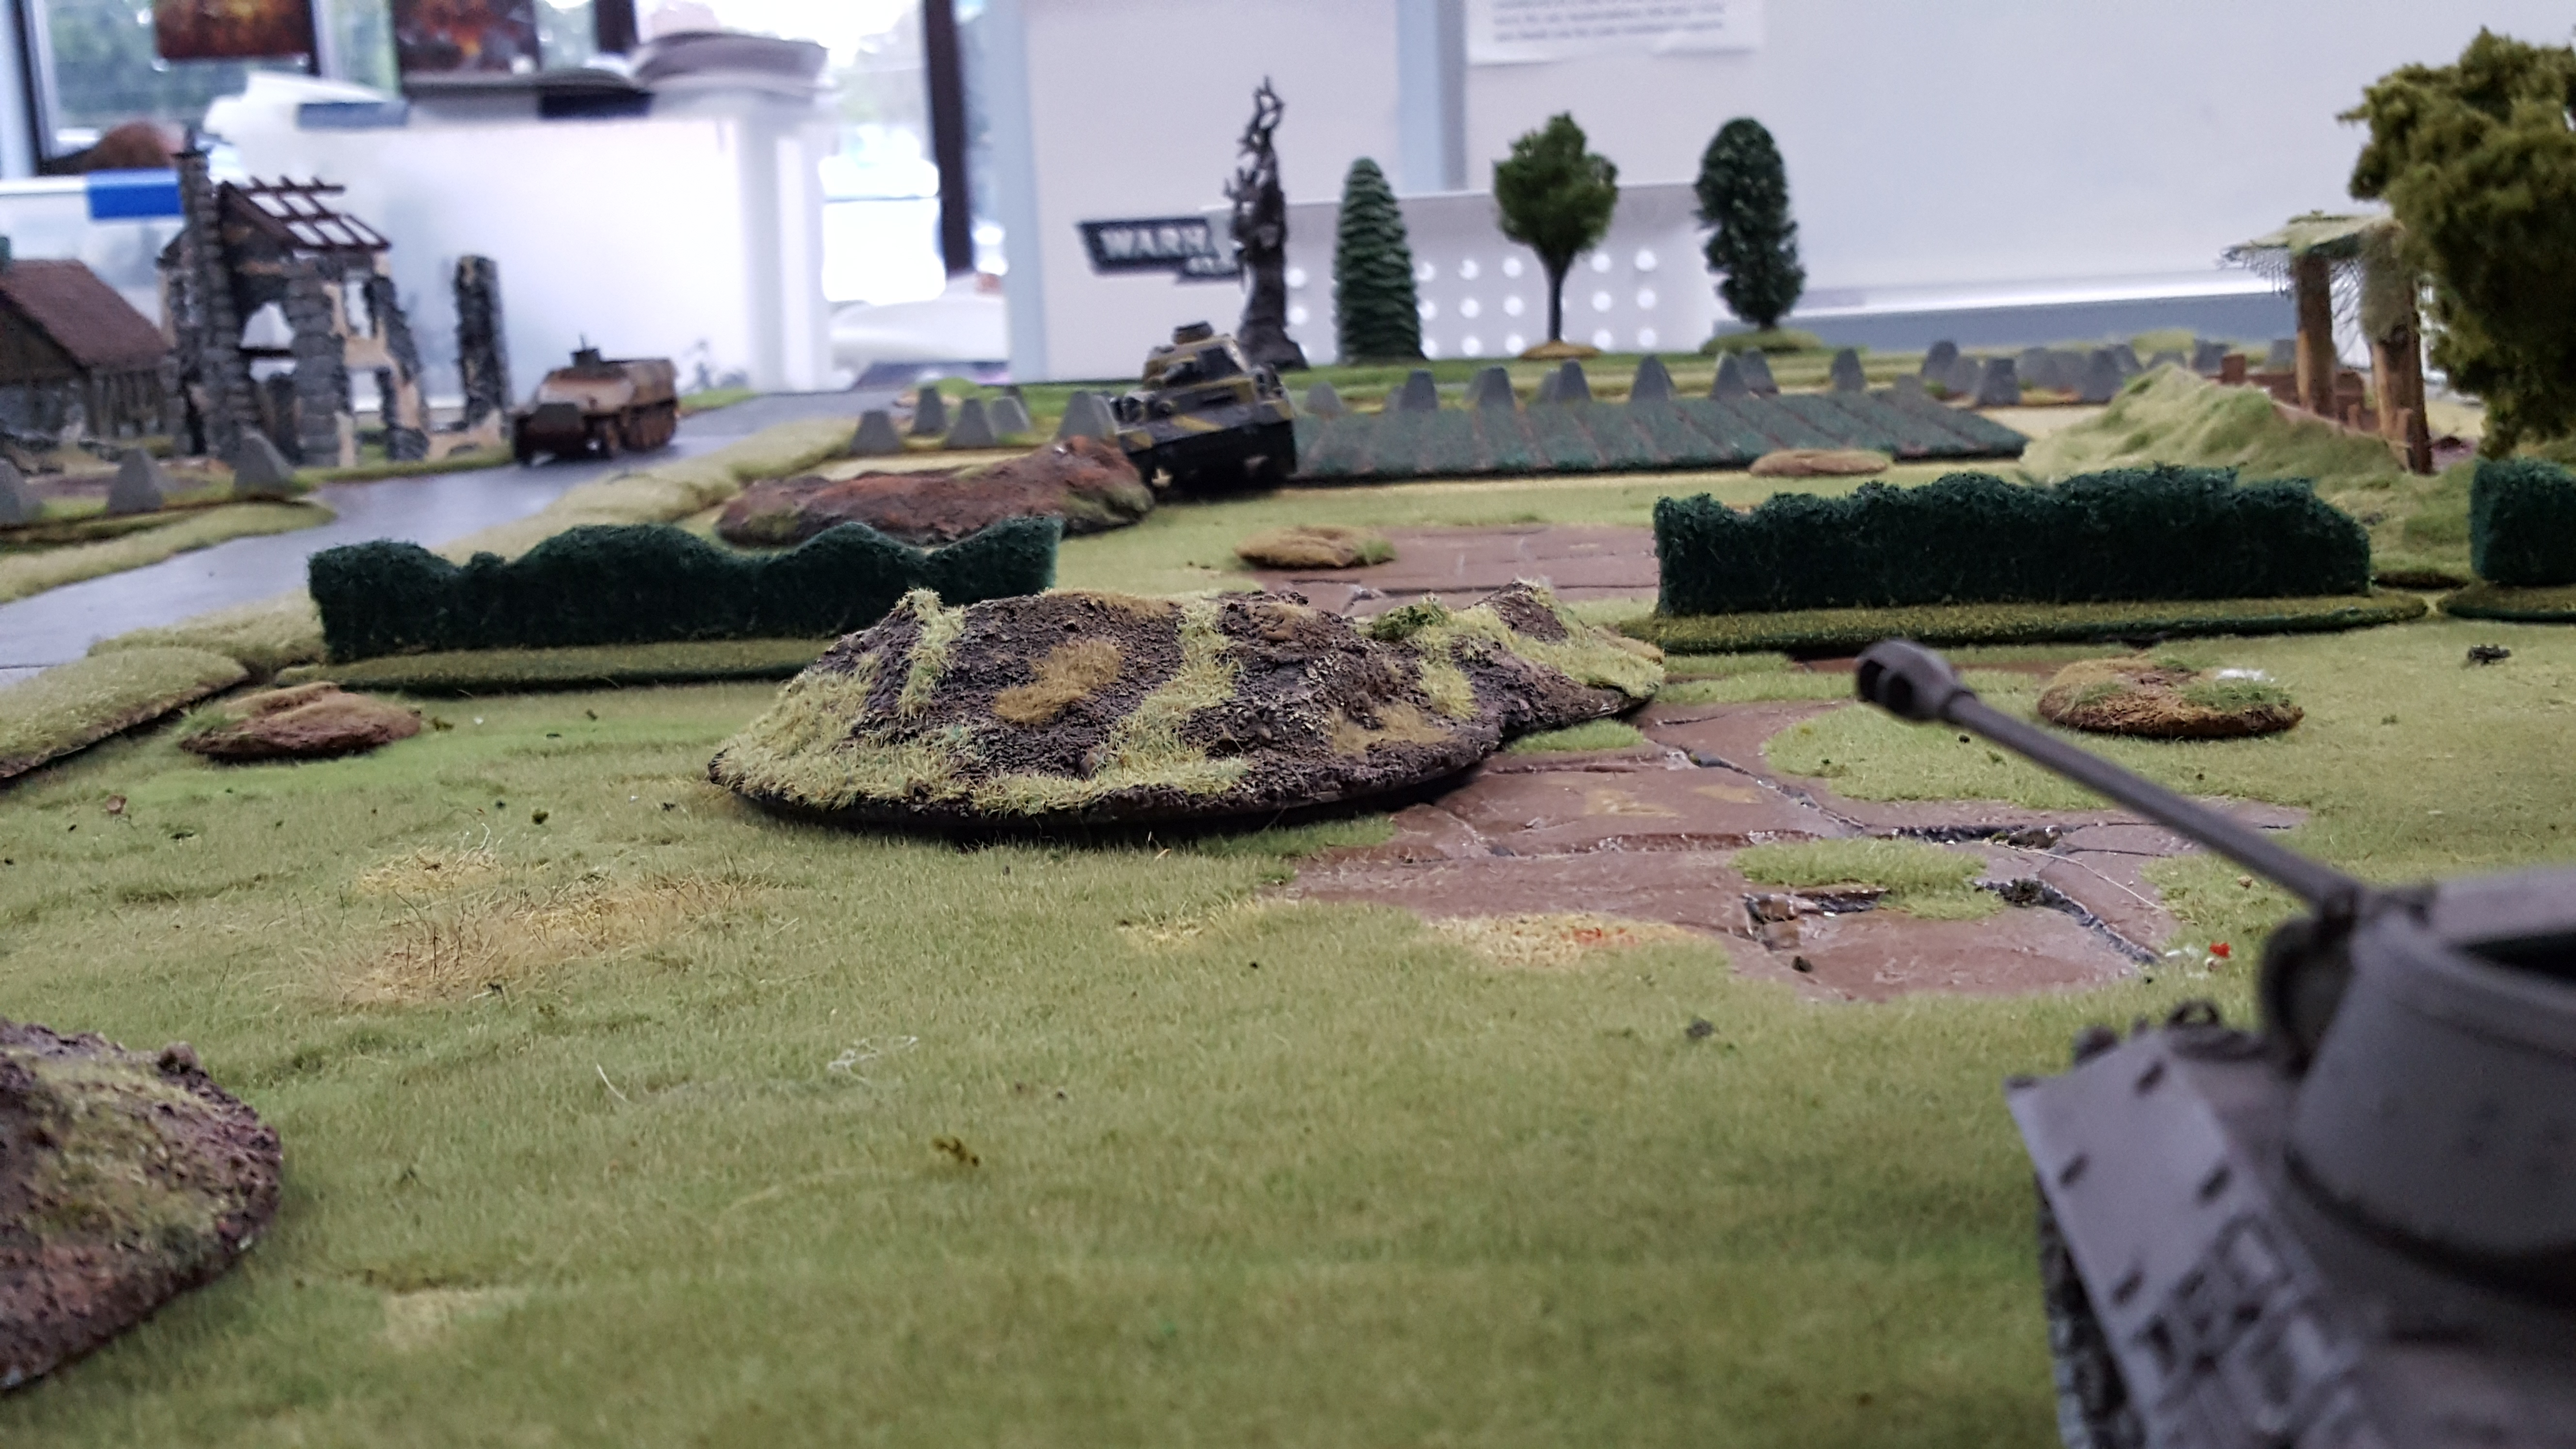 kampfgruppen smiledge versus Combat engineers in an armoured engagement